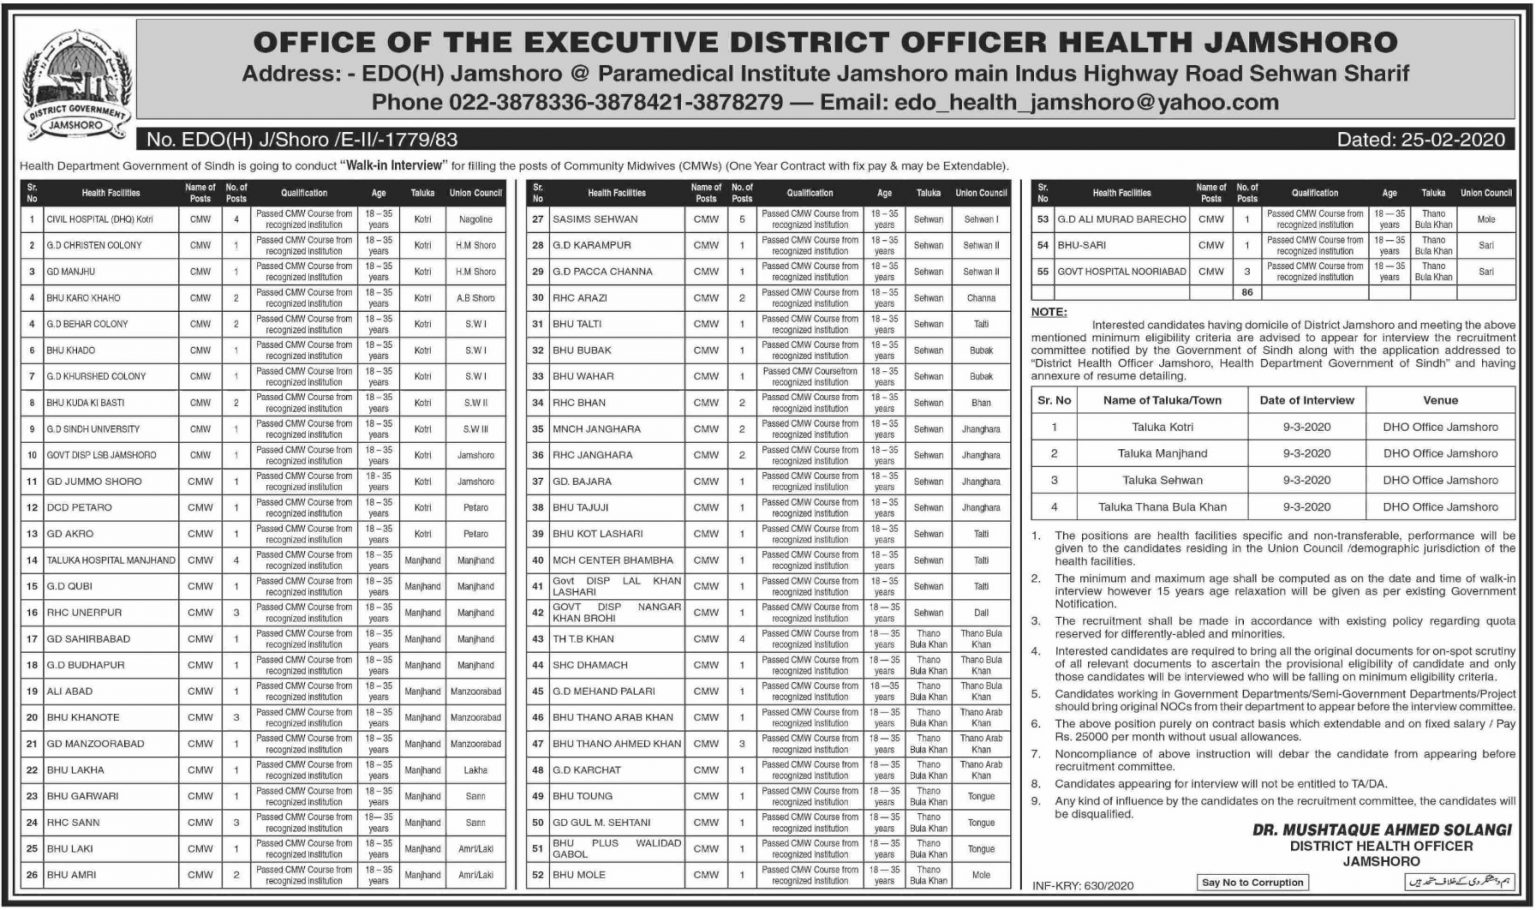 https://res.cloudinary.com/ds6y7ygnn/image/upload/v1582977889/Health-Department-Government-of-Sindh-Jobs-2020-District-Health-Officer-Jamshoro